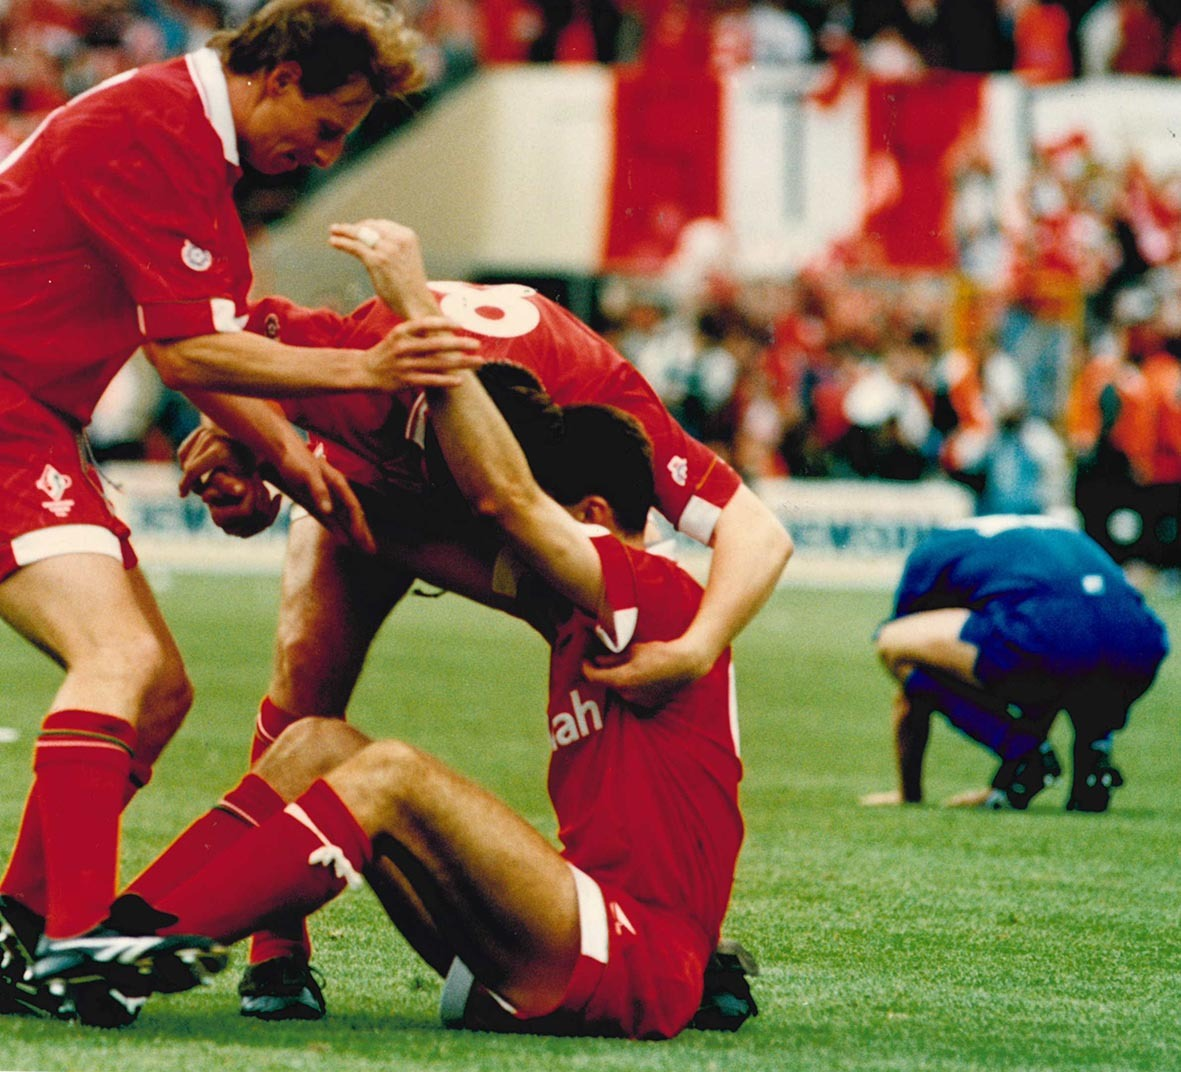 Martin Ling, Paul Bodin and Steve White. Swindon Town 4 Leicester City 3, First Division play-off final, Wembley, May 31, 1993